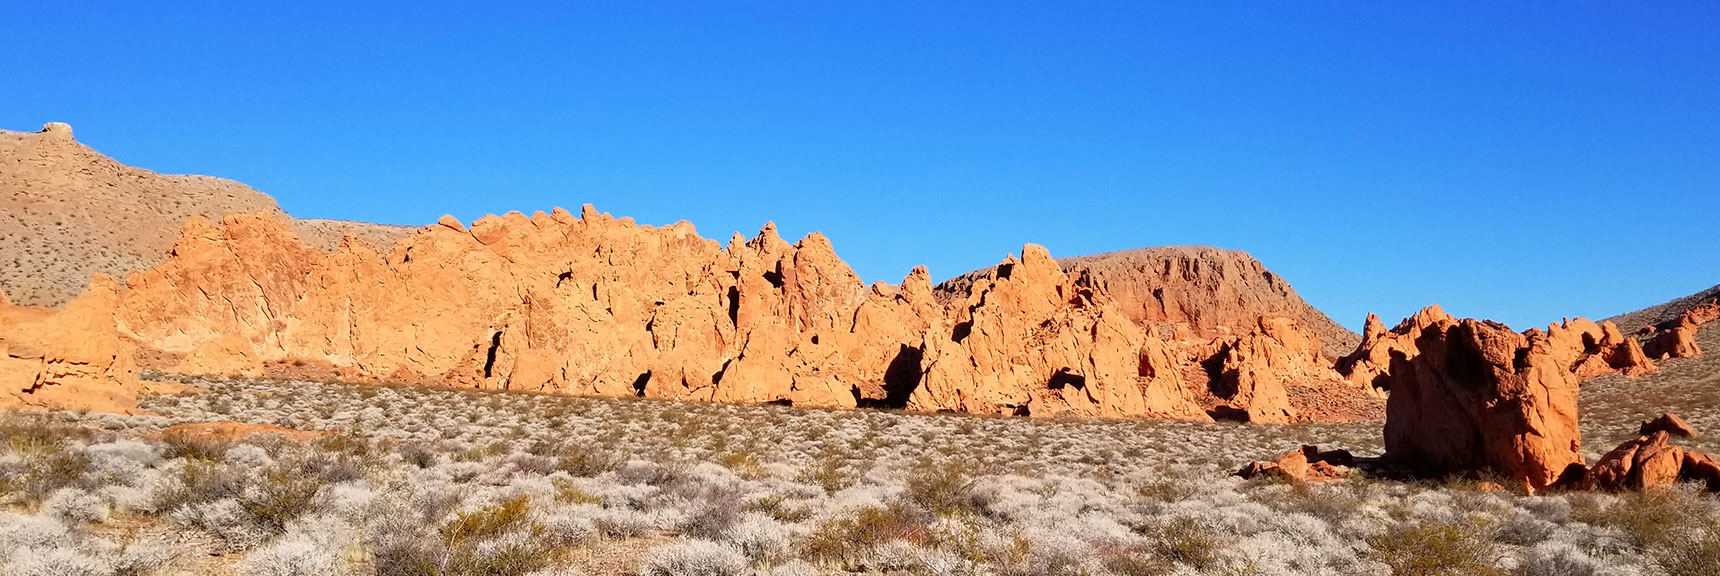 First View of the Pinnacles on Pinnacles Loop Trail in Valley of Fire State Park, Nevada